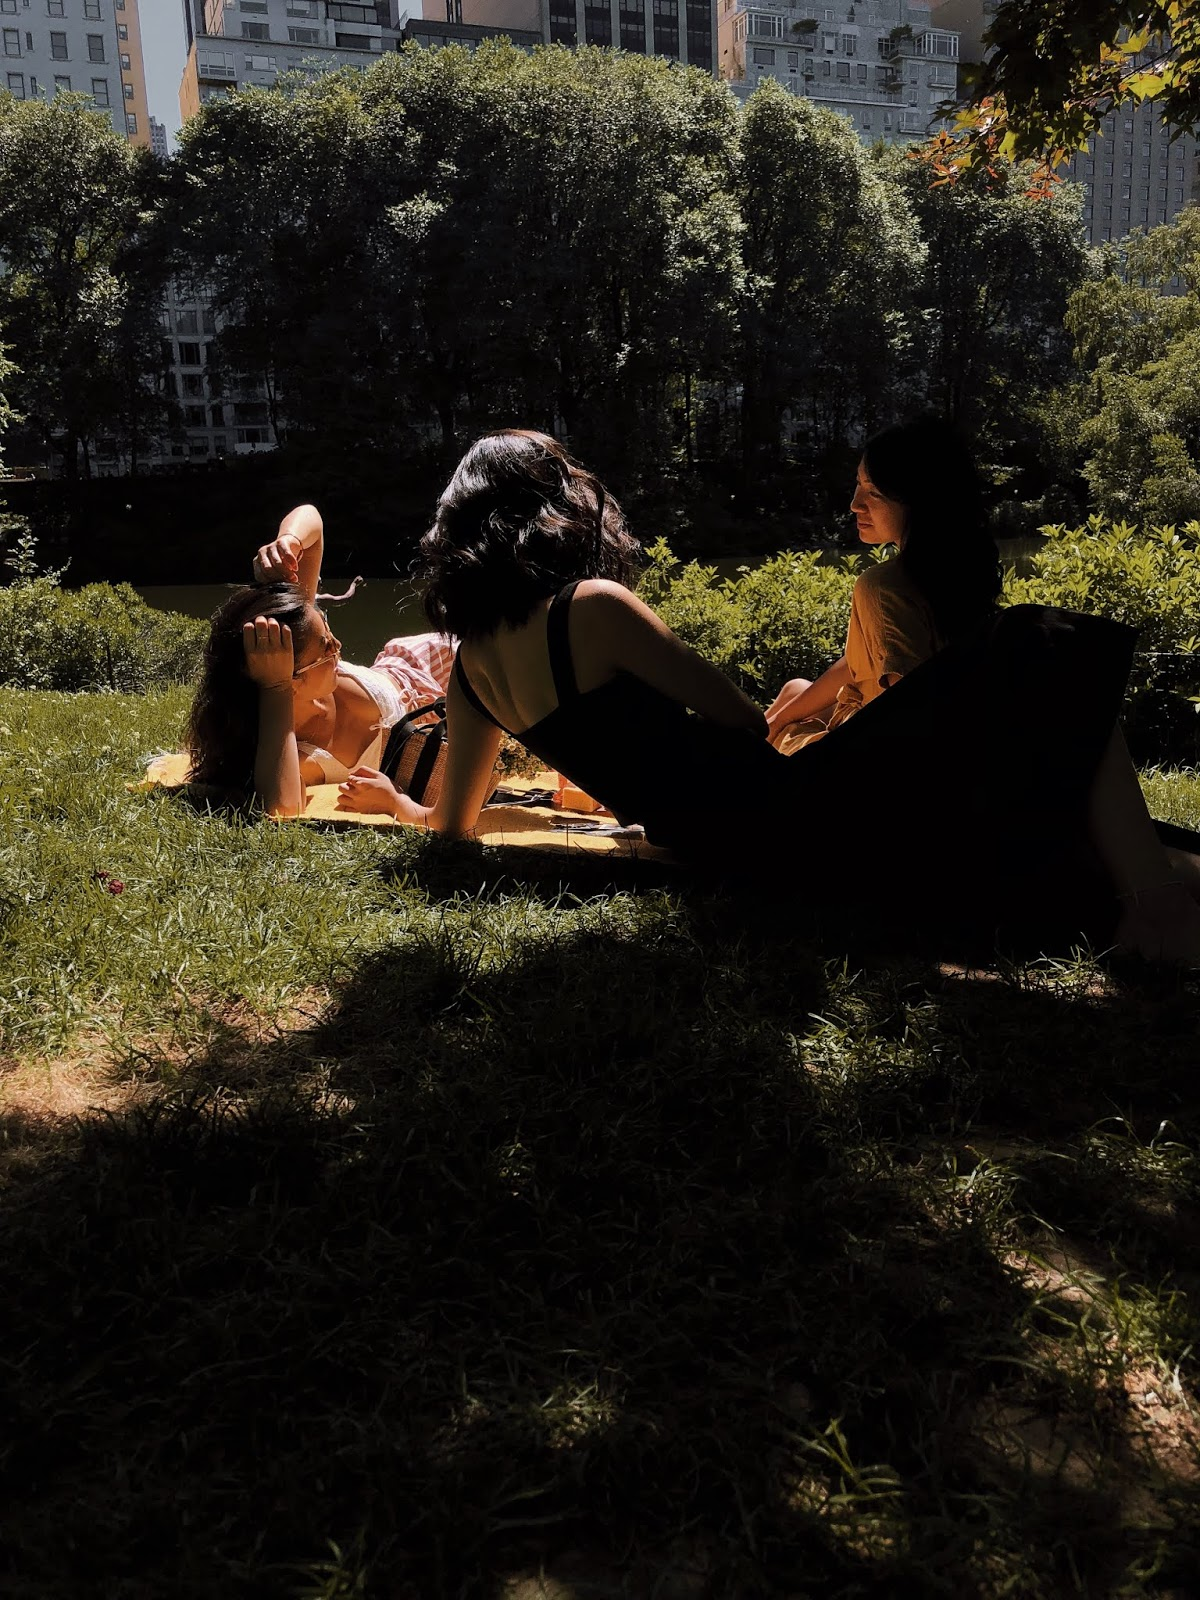 Central Park Picnic ideas, Central Park Picnic with friends, girls picnic in Central Park, Picnic cheeseboards, Picnic editorials - FOREVERVANNY / 072018 / Home Sweet Home